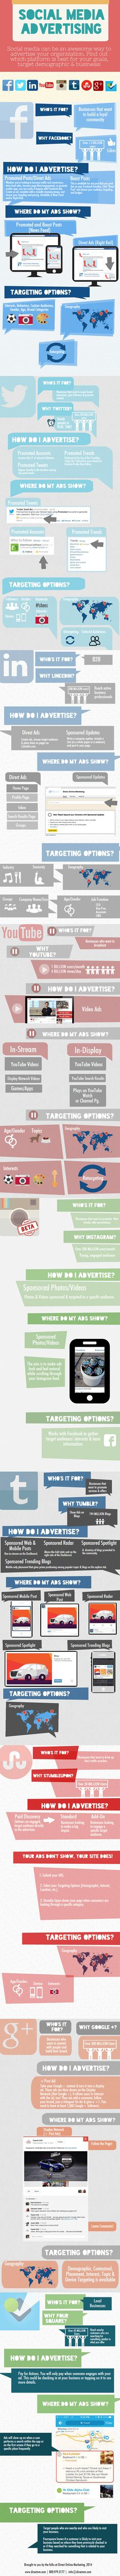 Social Media Advertising A Comprehensive Guide to Paid Social Adverts #Infographic http://fleetheratrace.blogspot.co.uk/2015/06/why-paying-for-social-is-better-than-doing-social.html #paidads #paid #advertising #paidads #ppc #socialmedia #marketing #socialadvertising #socialads #facebook #twitter #youtube